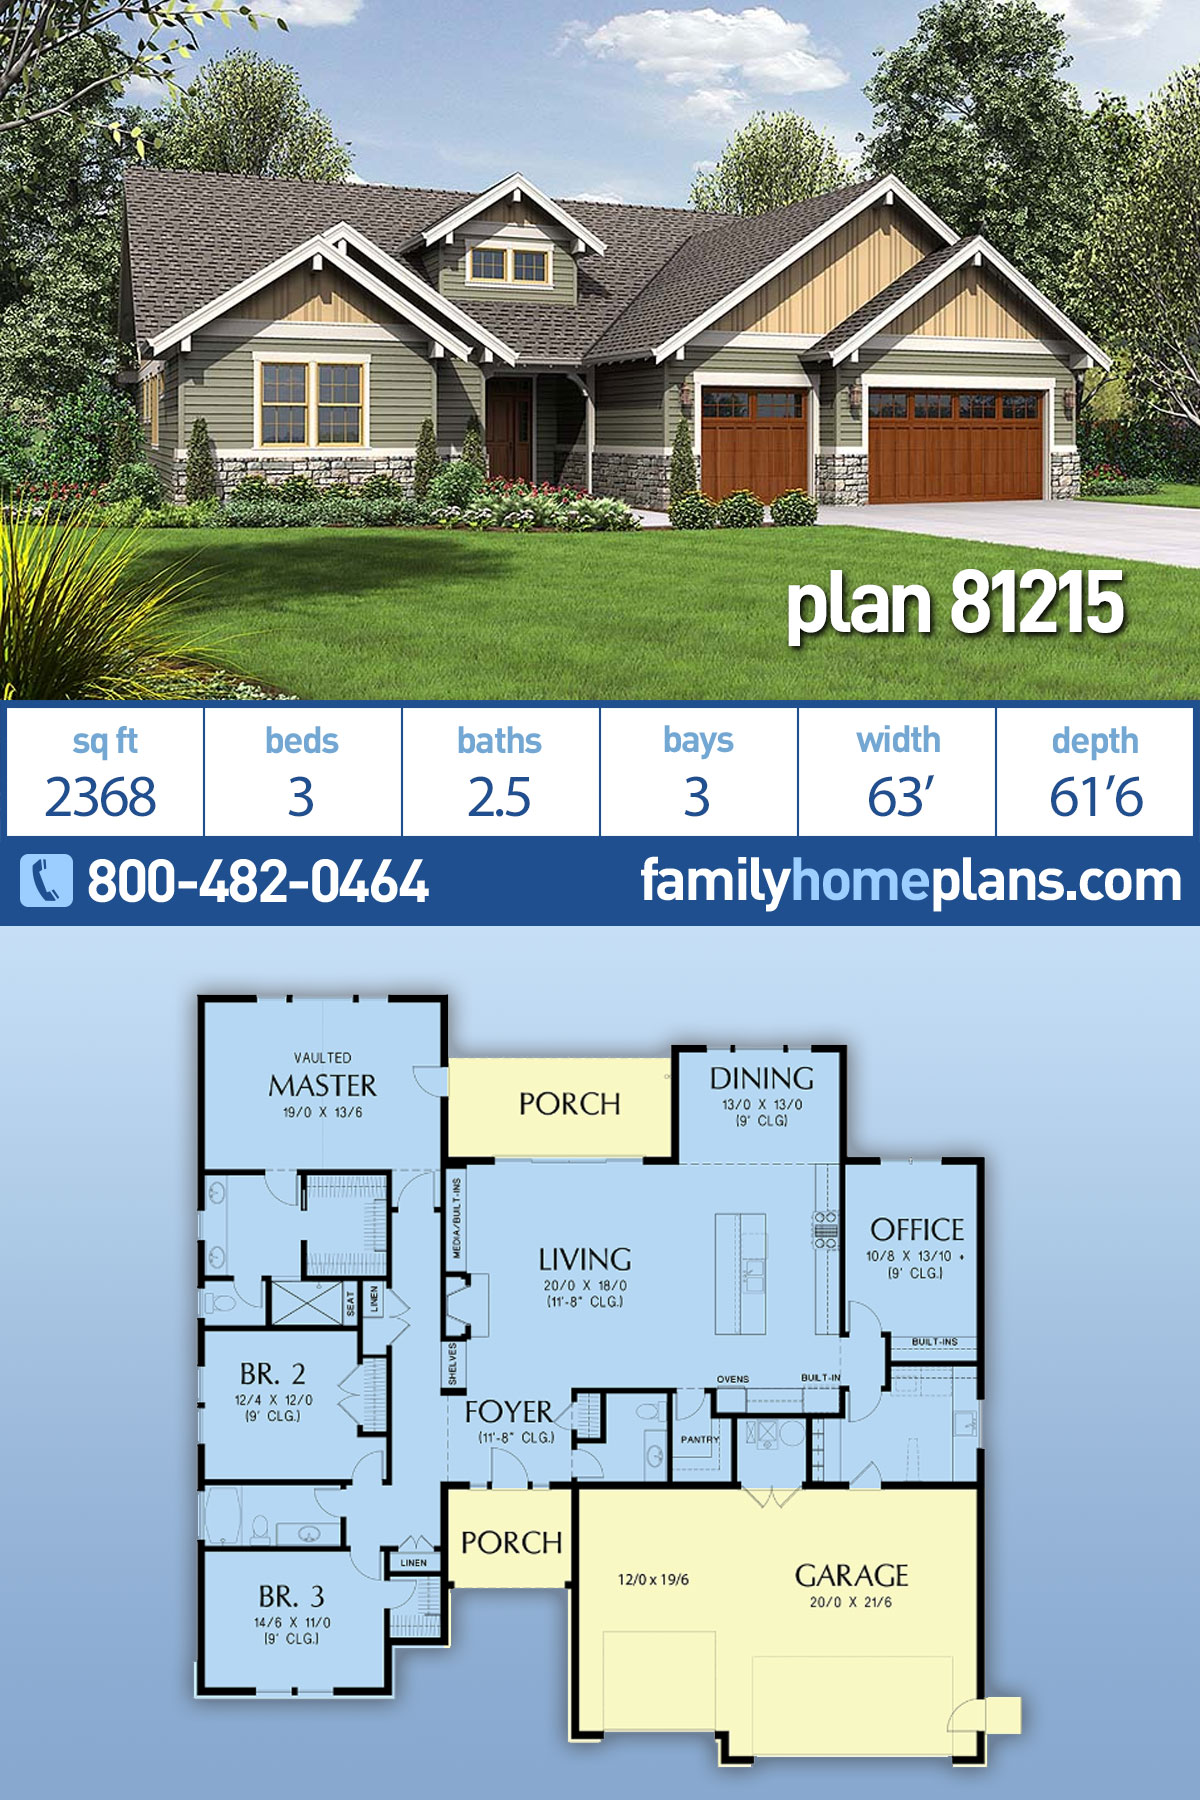 Craftsman House Plan 81215 with 3 Beds, 3 Baths, 3 Car Garage